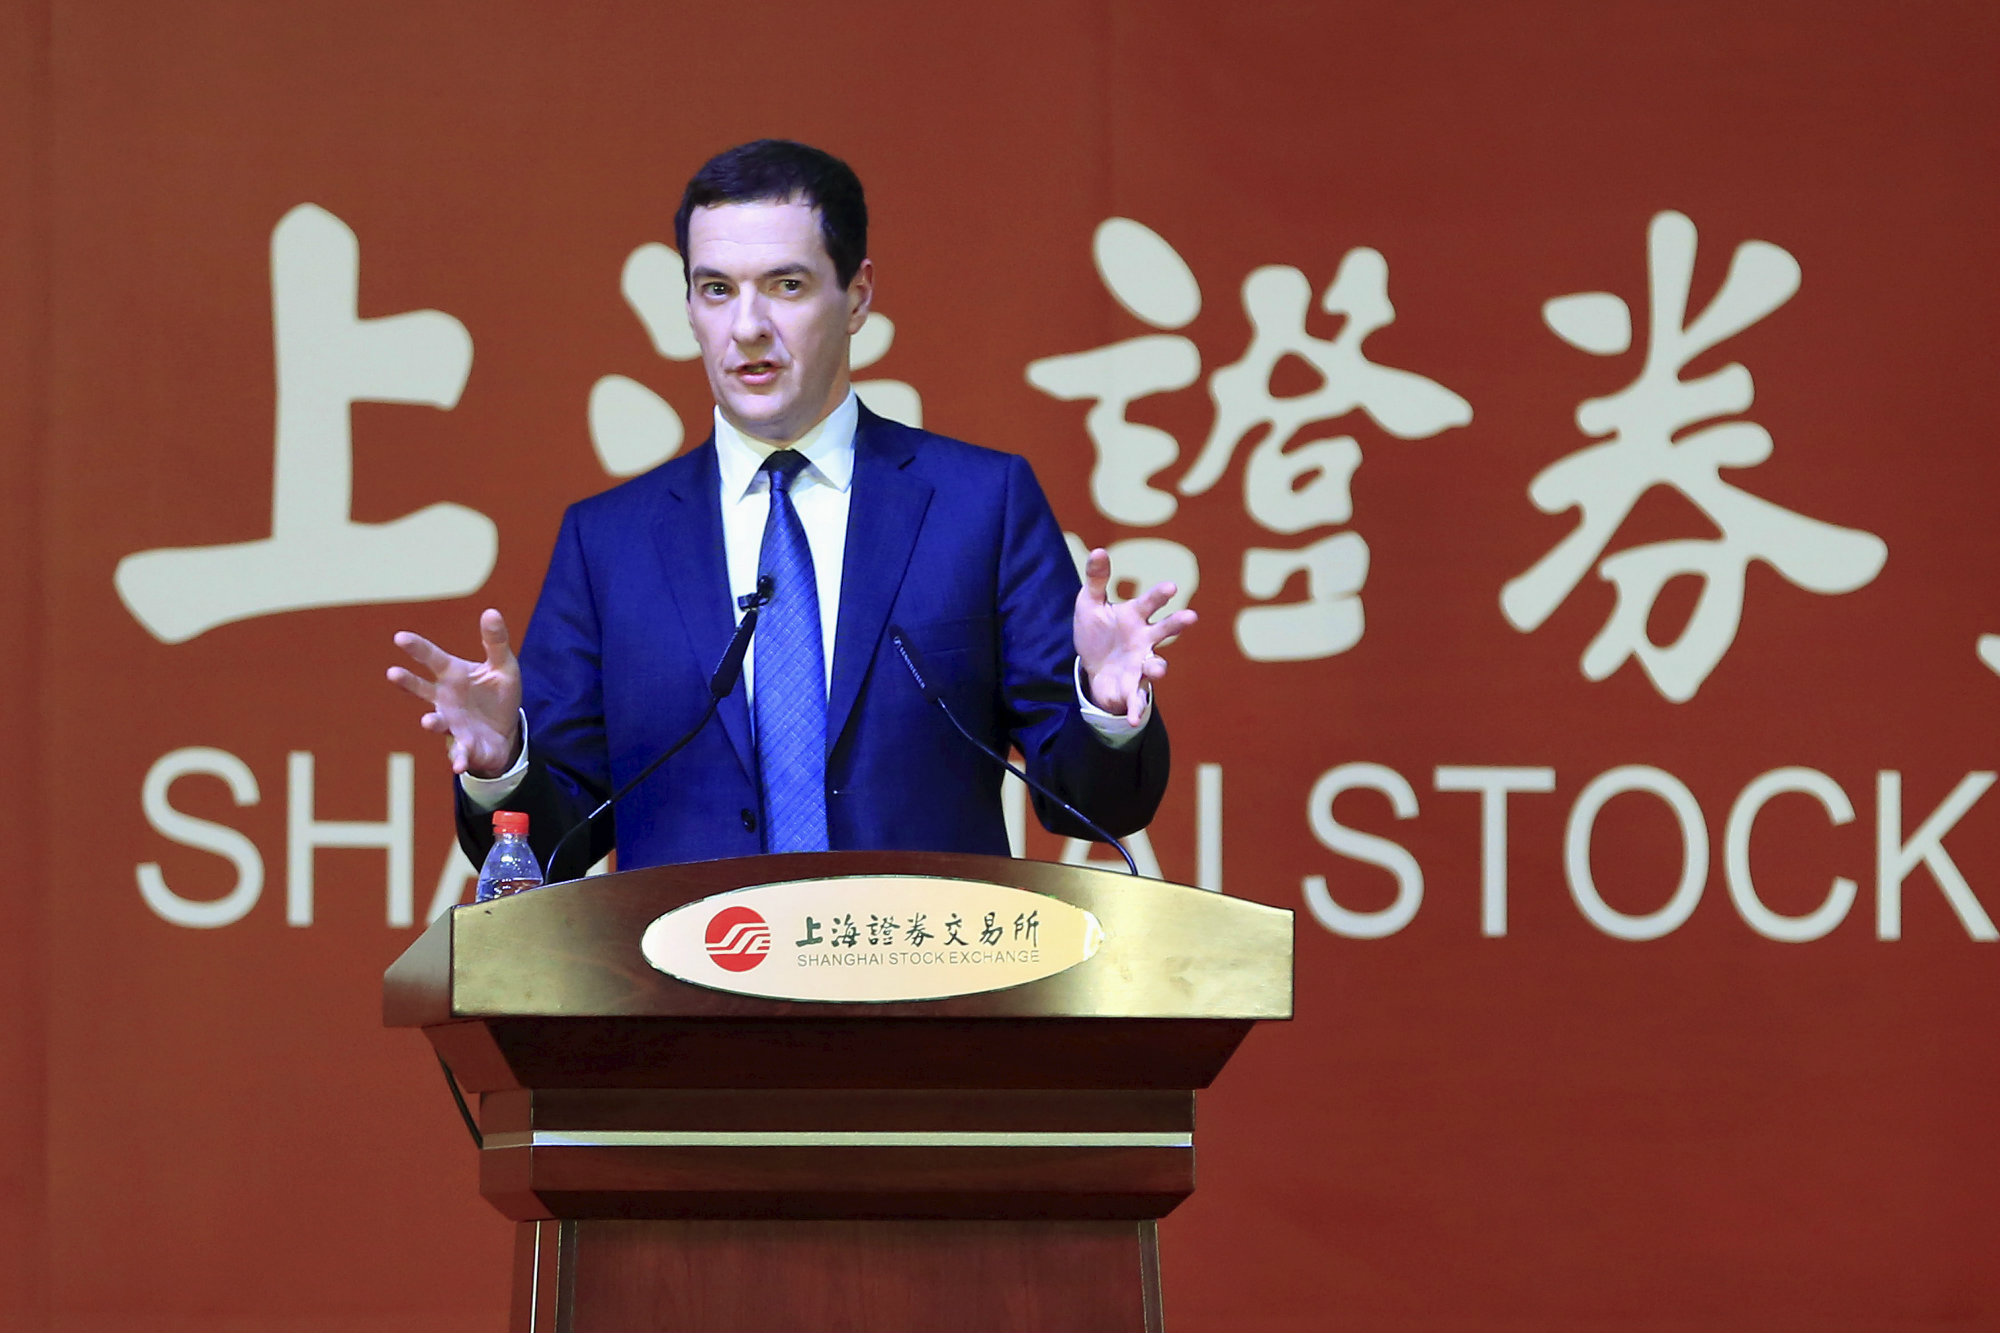 Britain's Chancellor of the Exchequer George Osborne delivers a speech at the Shanghai Stock Exchange..